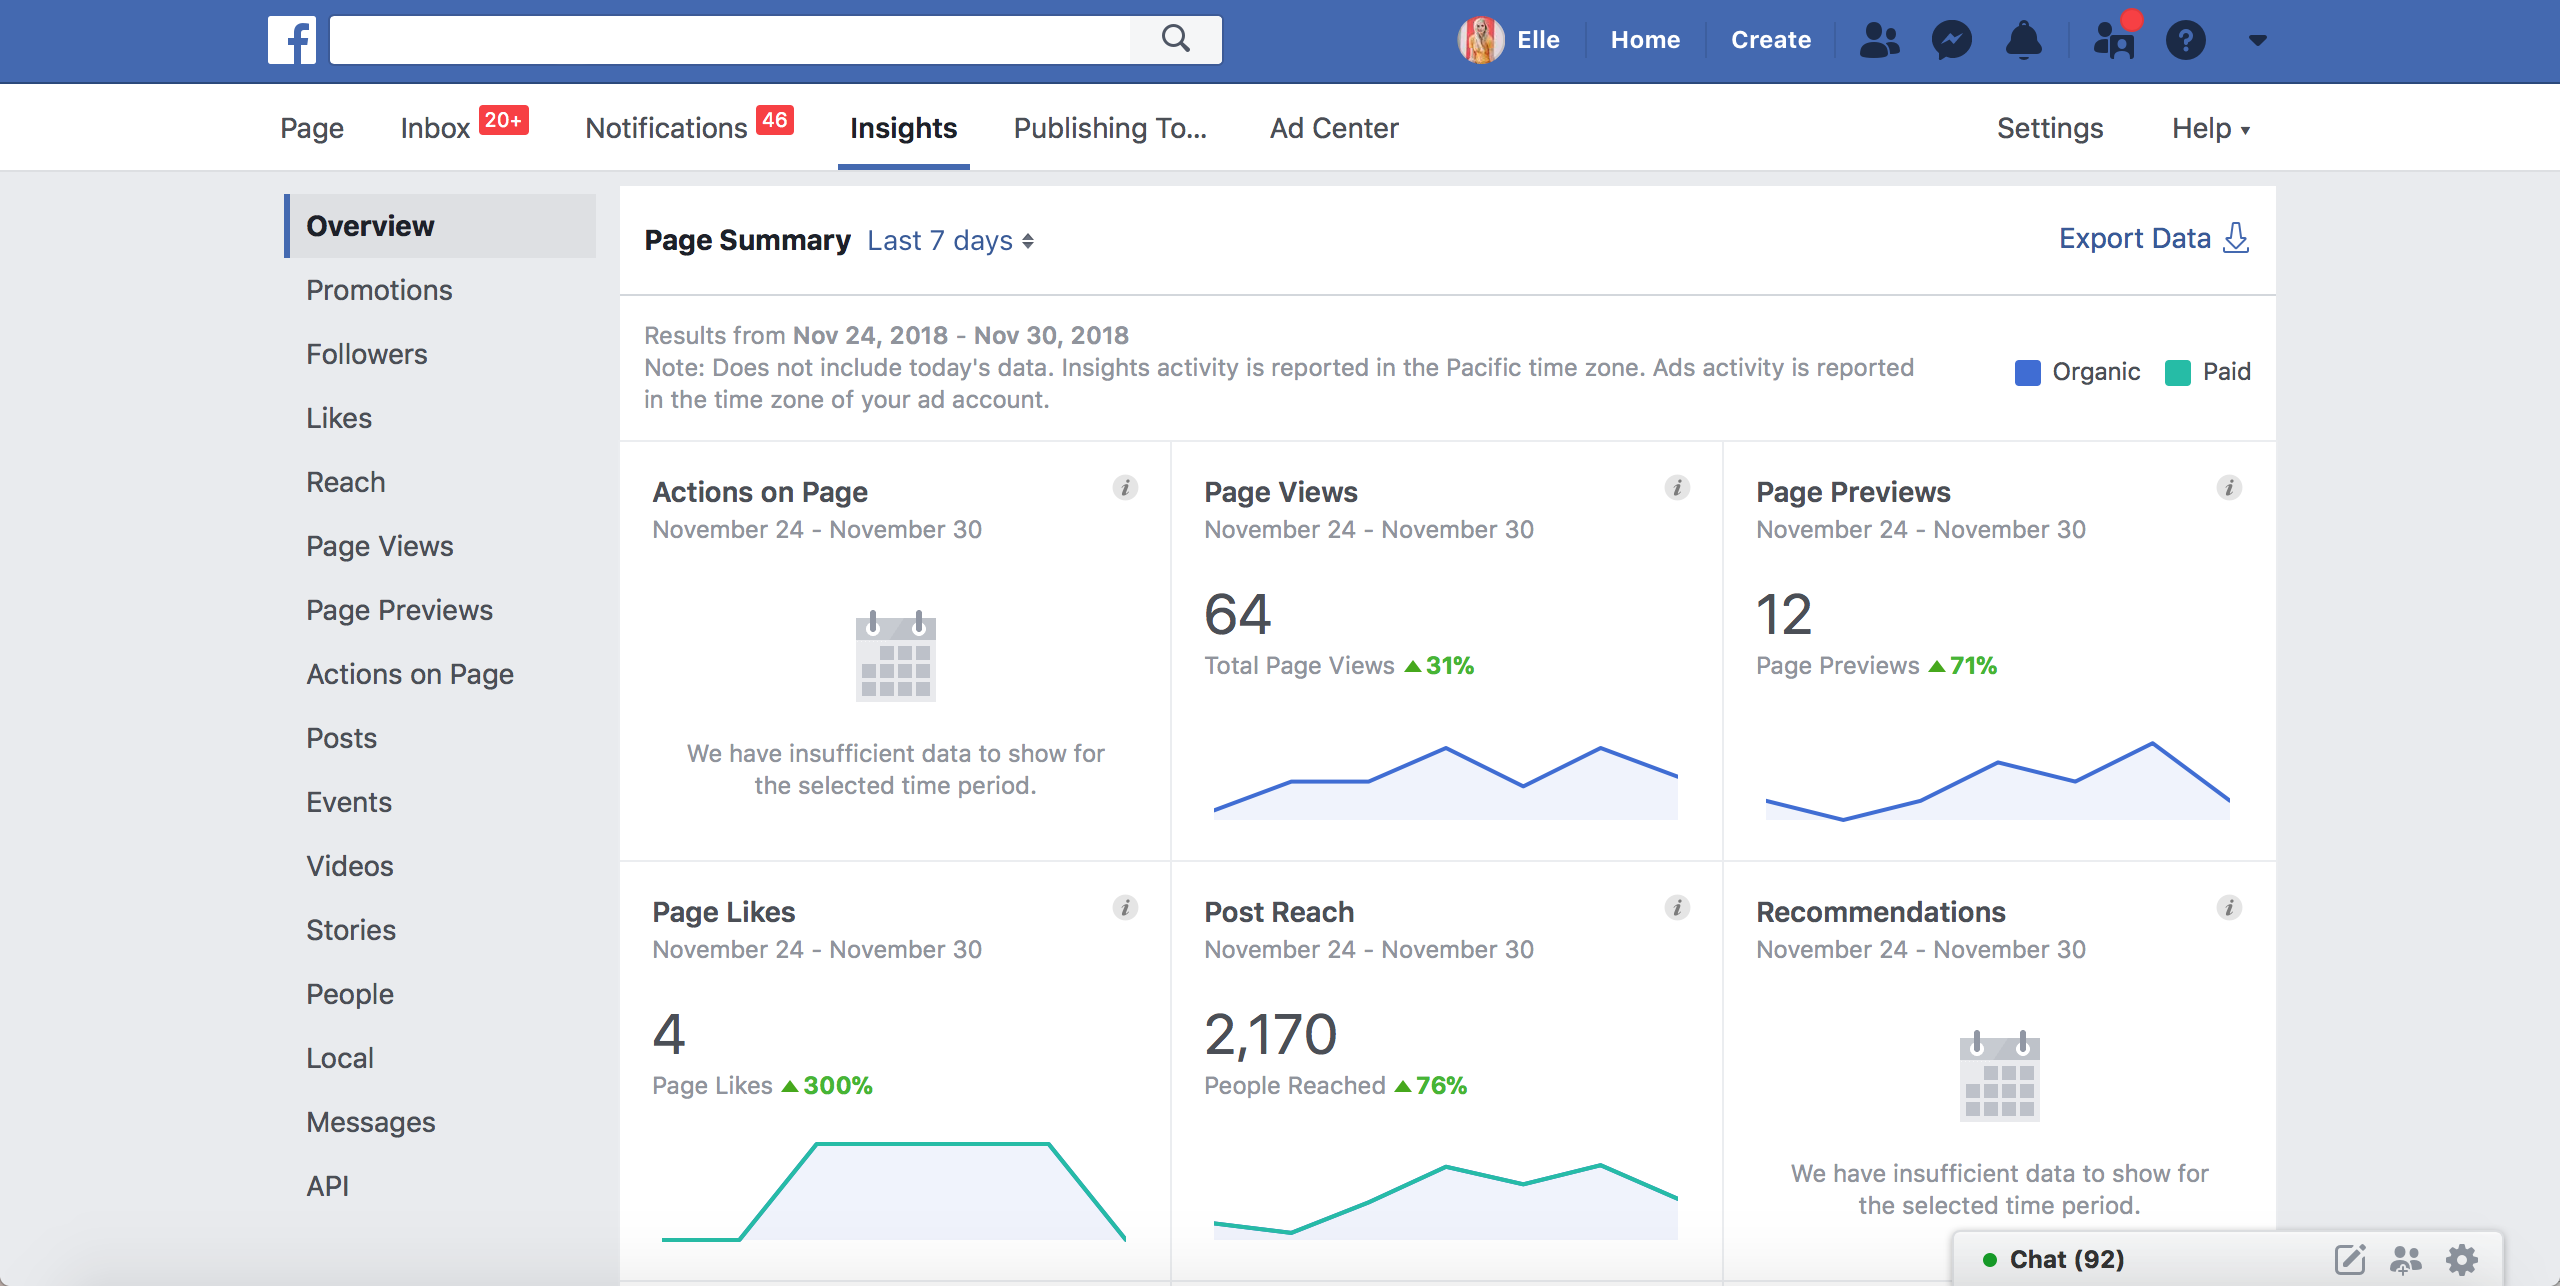 social-media-management-manager-facebook-instagram-outsourcing-results-insights-growth-01